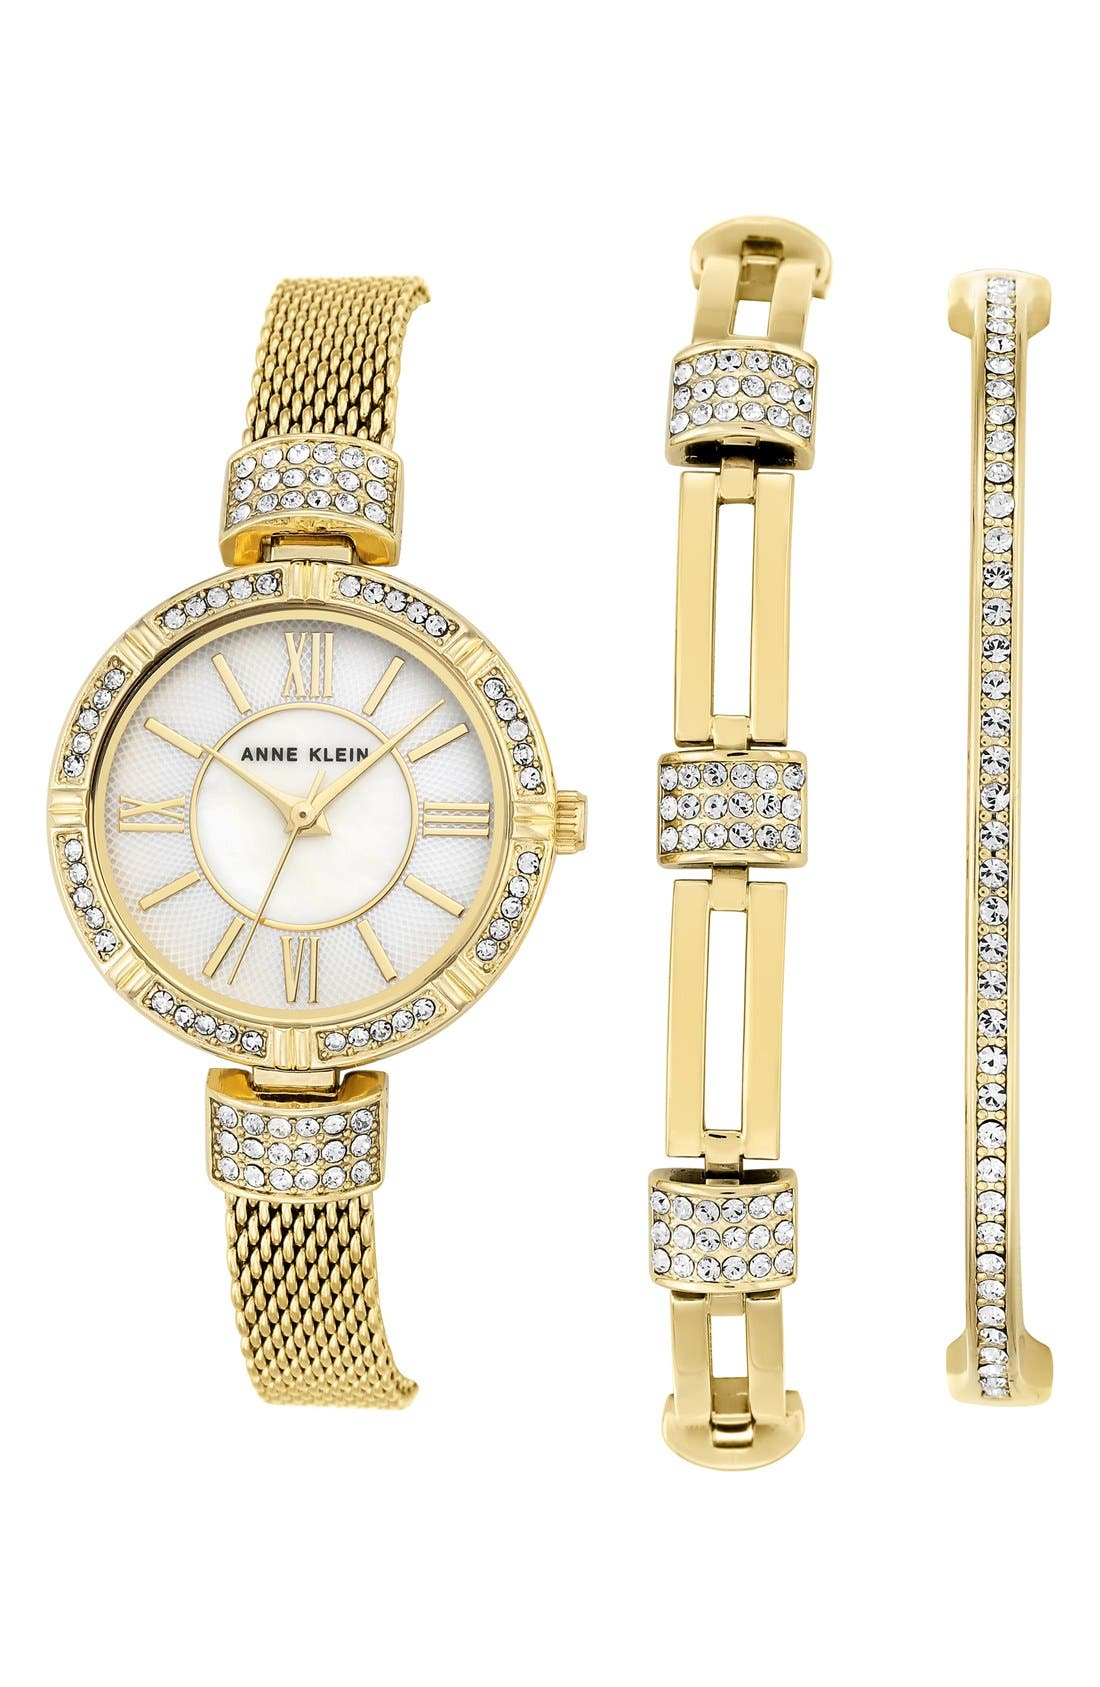 ANNE KLEIN Watch & Bangle Set, 28mm